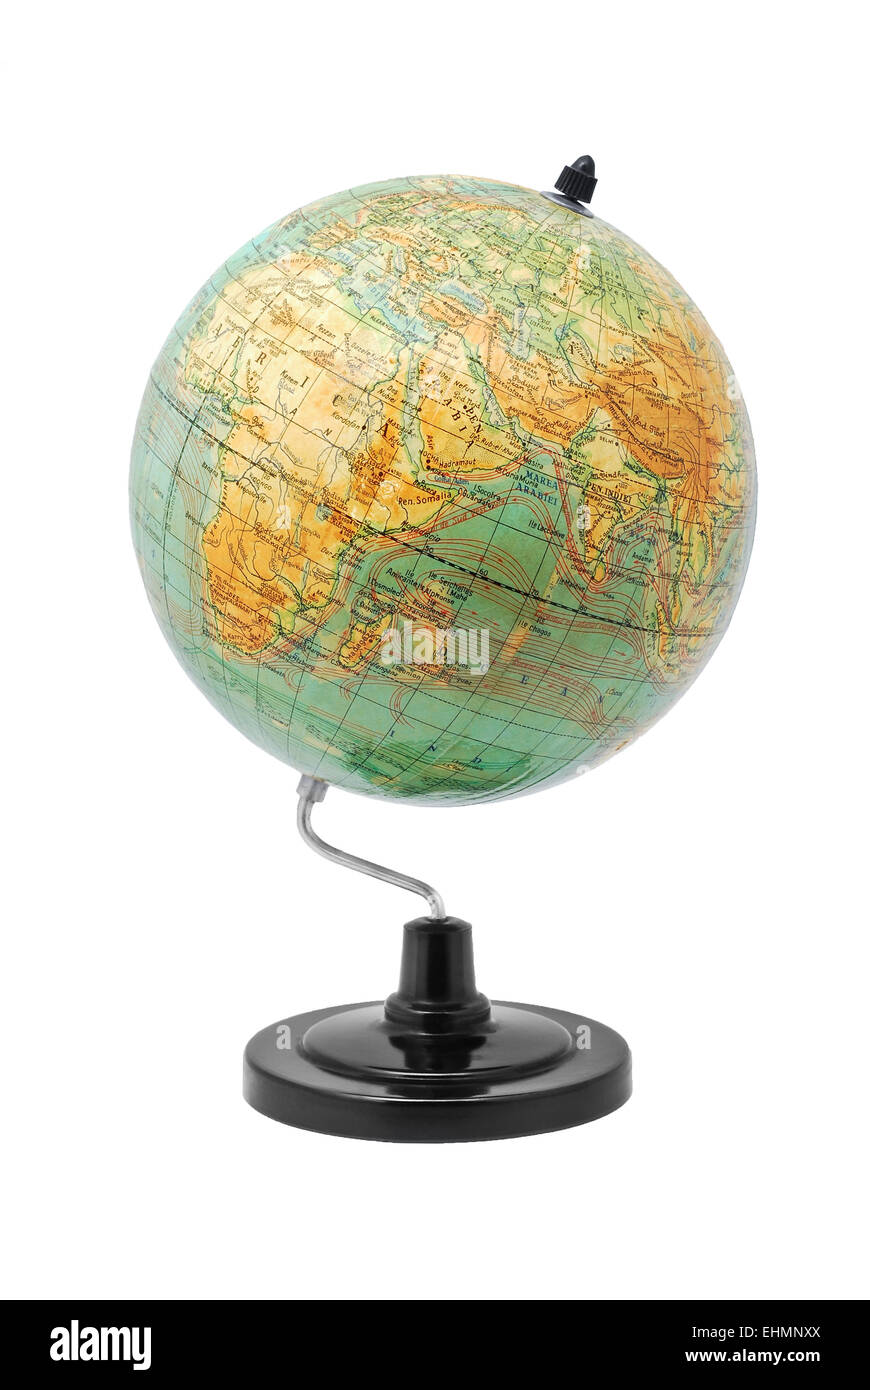 earth globe isolated on white - Stock Image